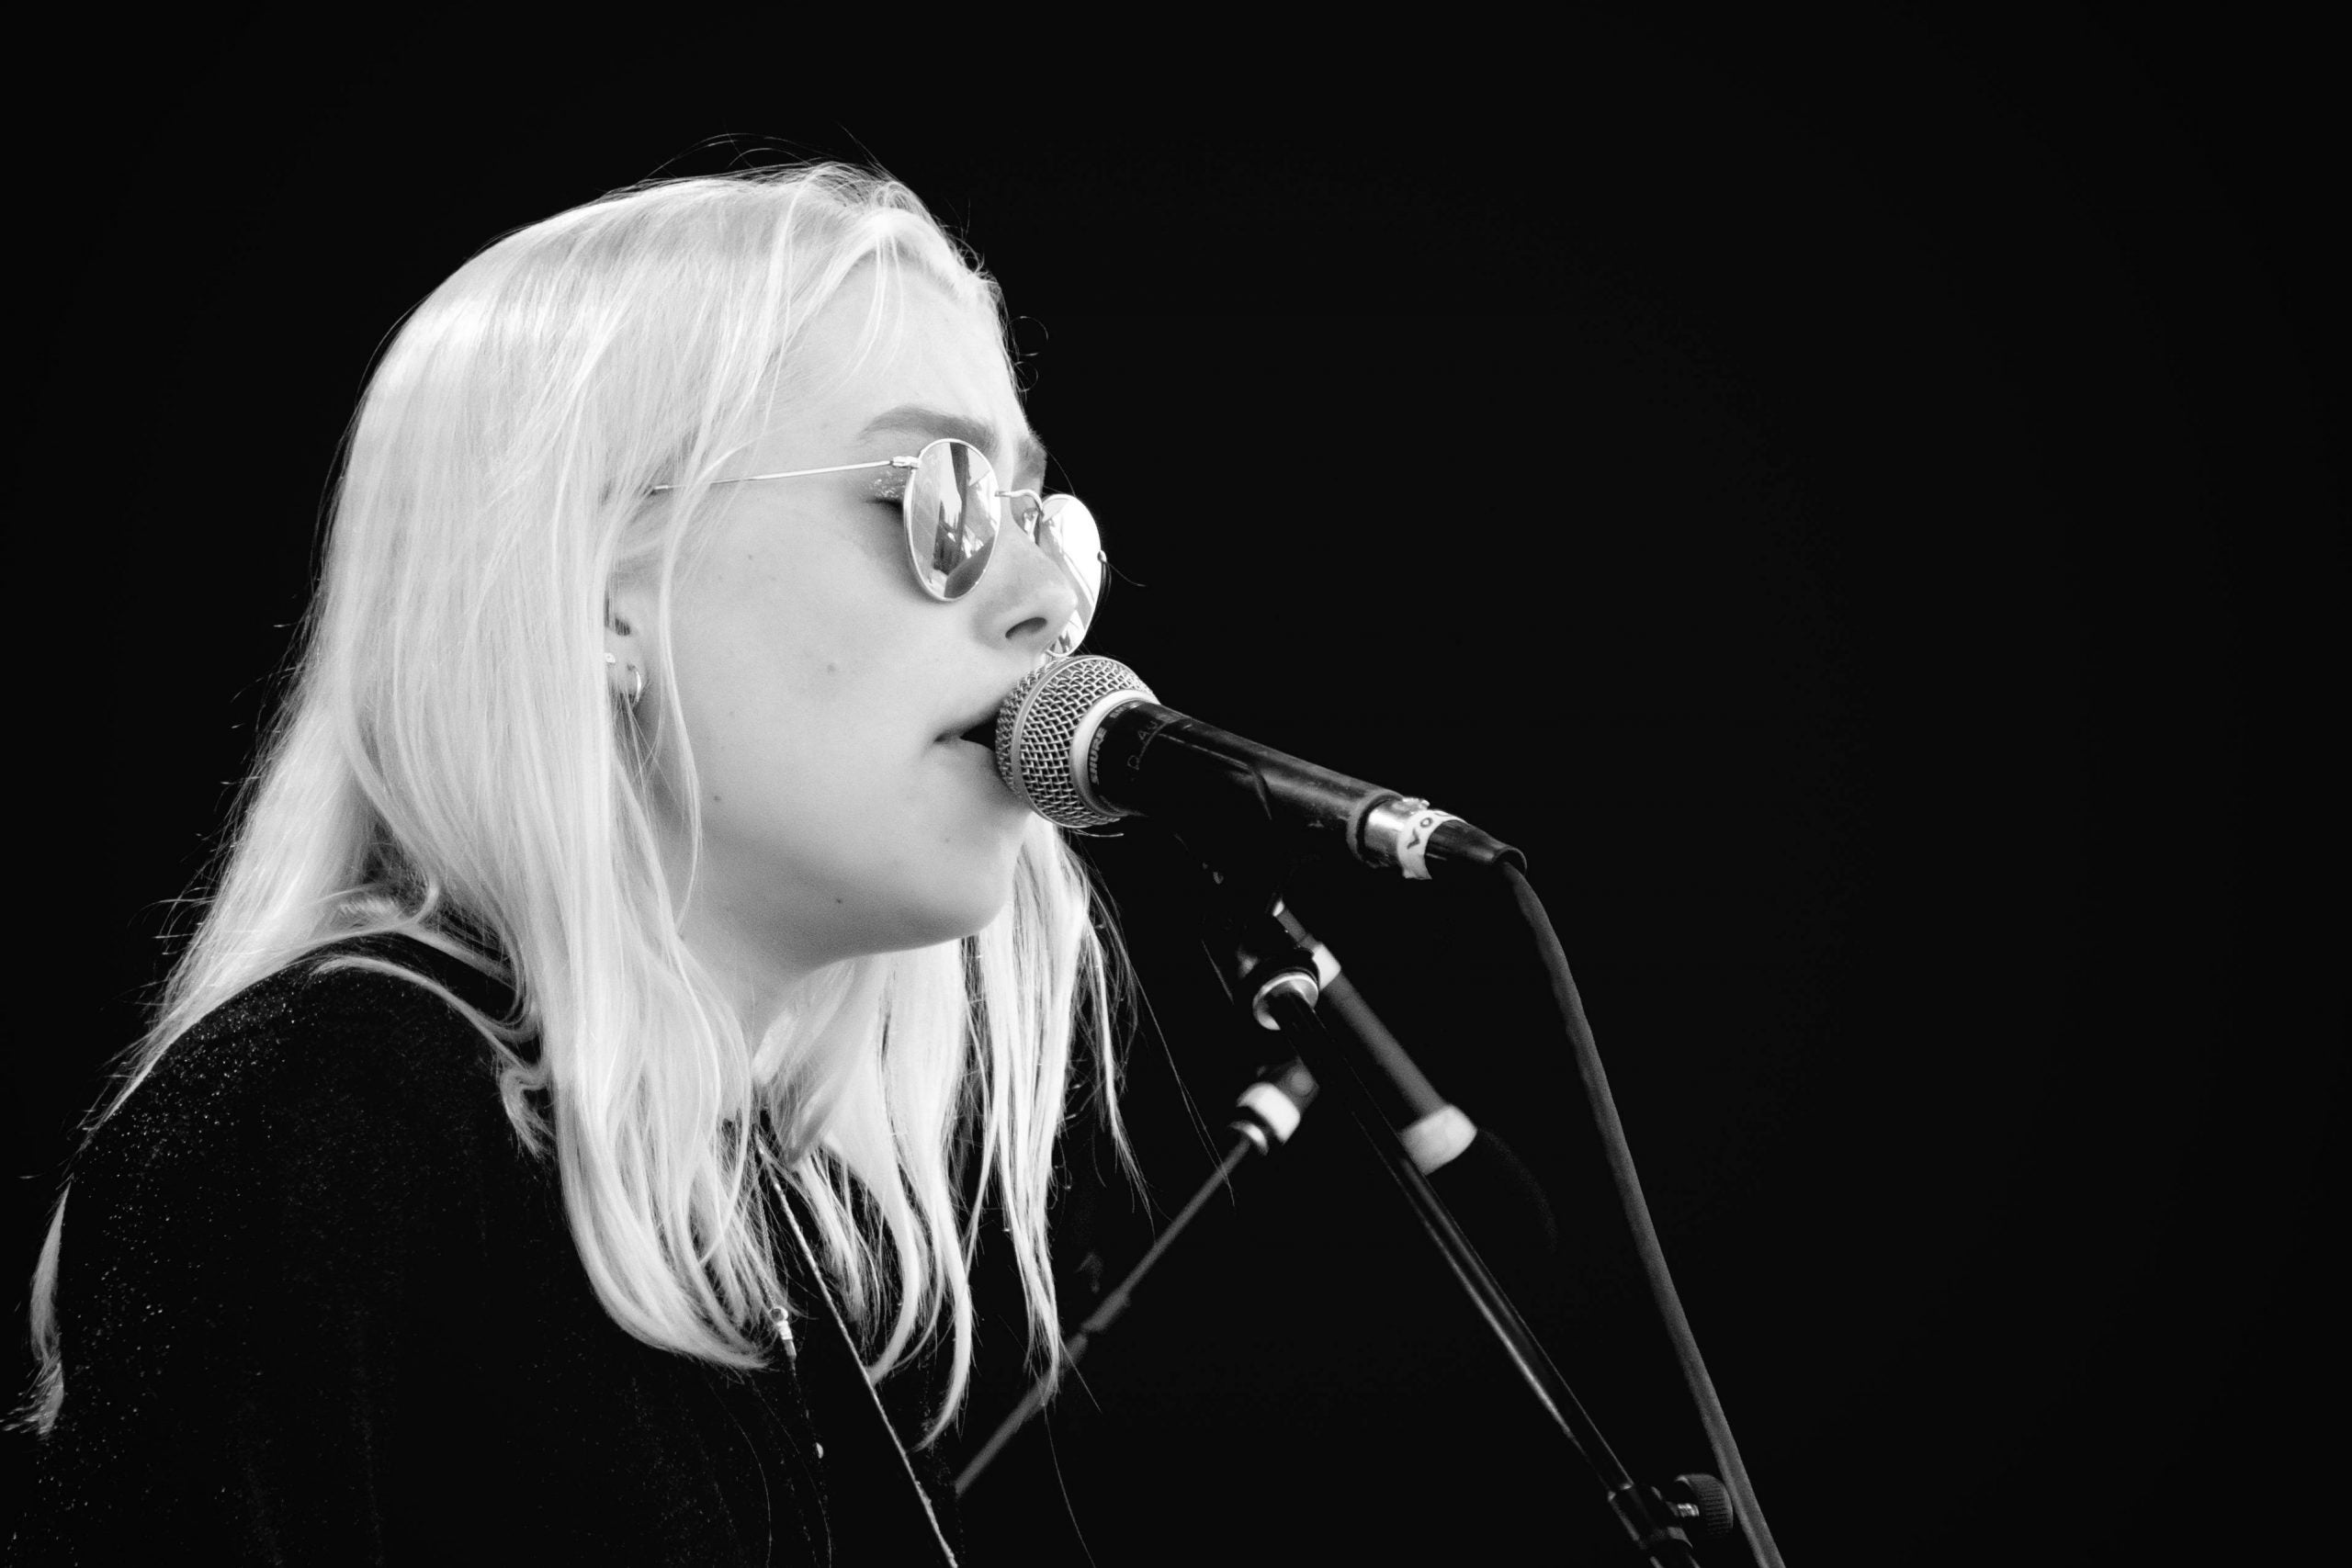 If you don't already know Phoebe Bridgers's music, get to know it